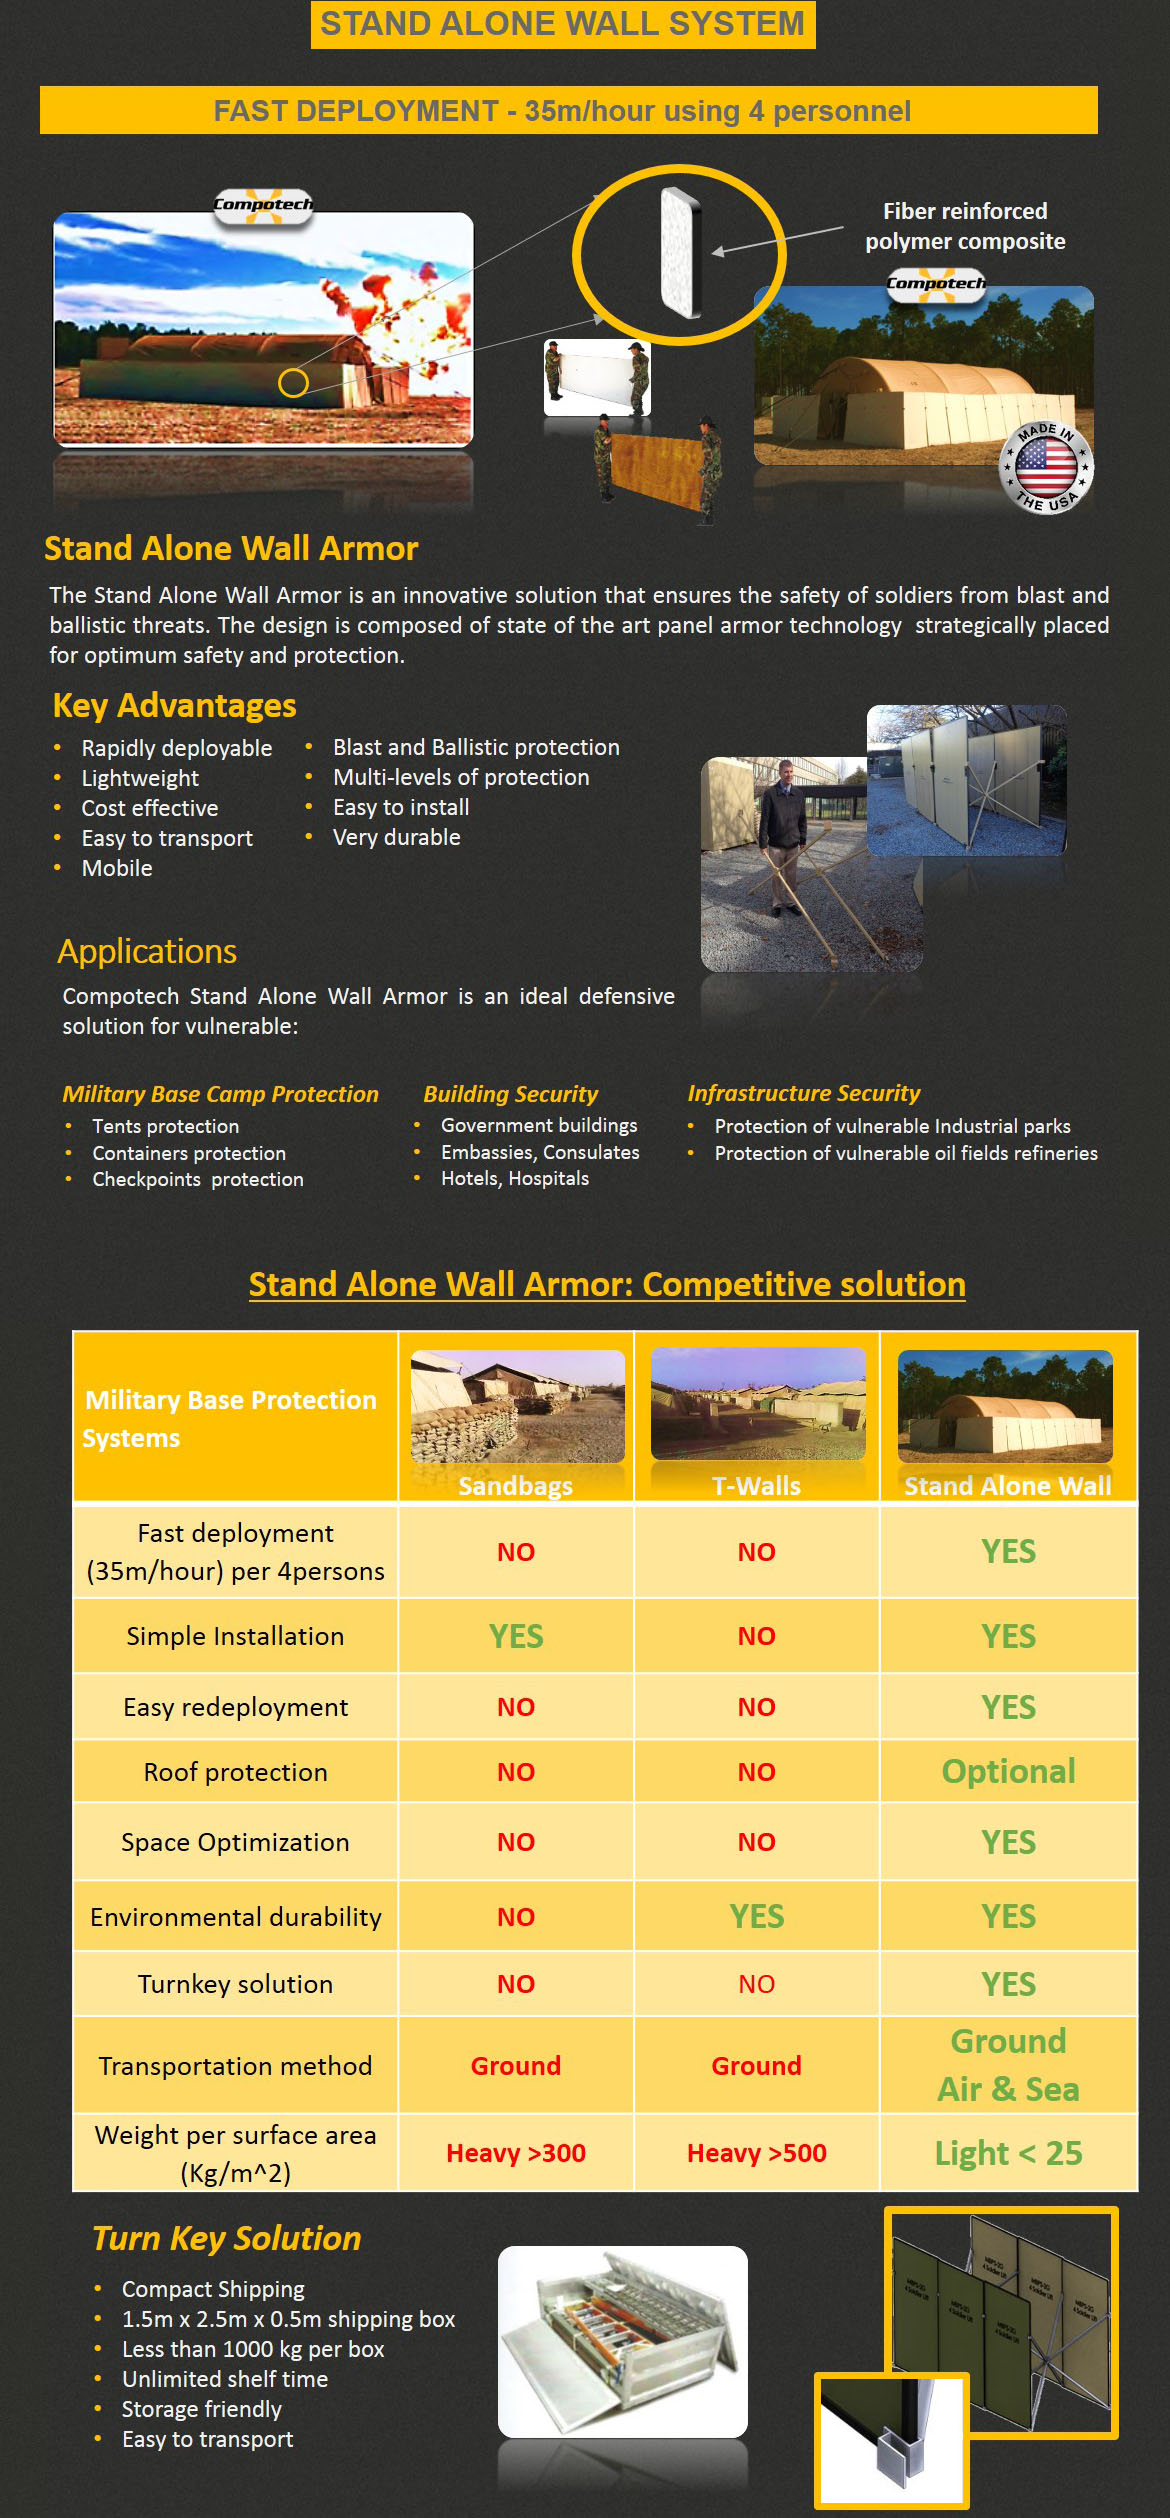 Stand Alone Wall System web image